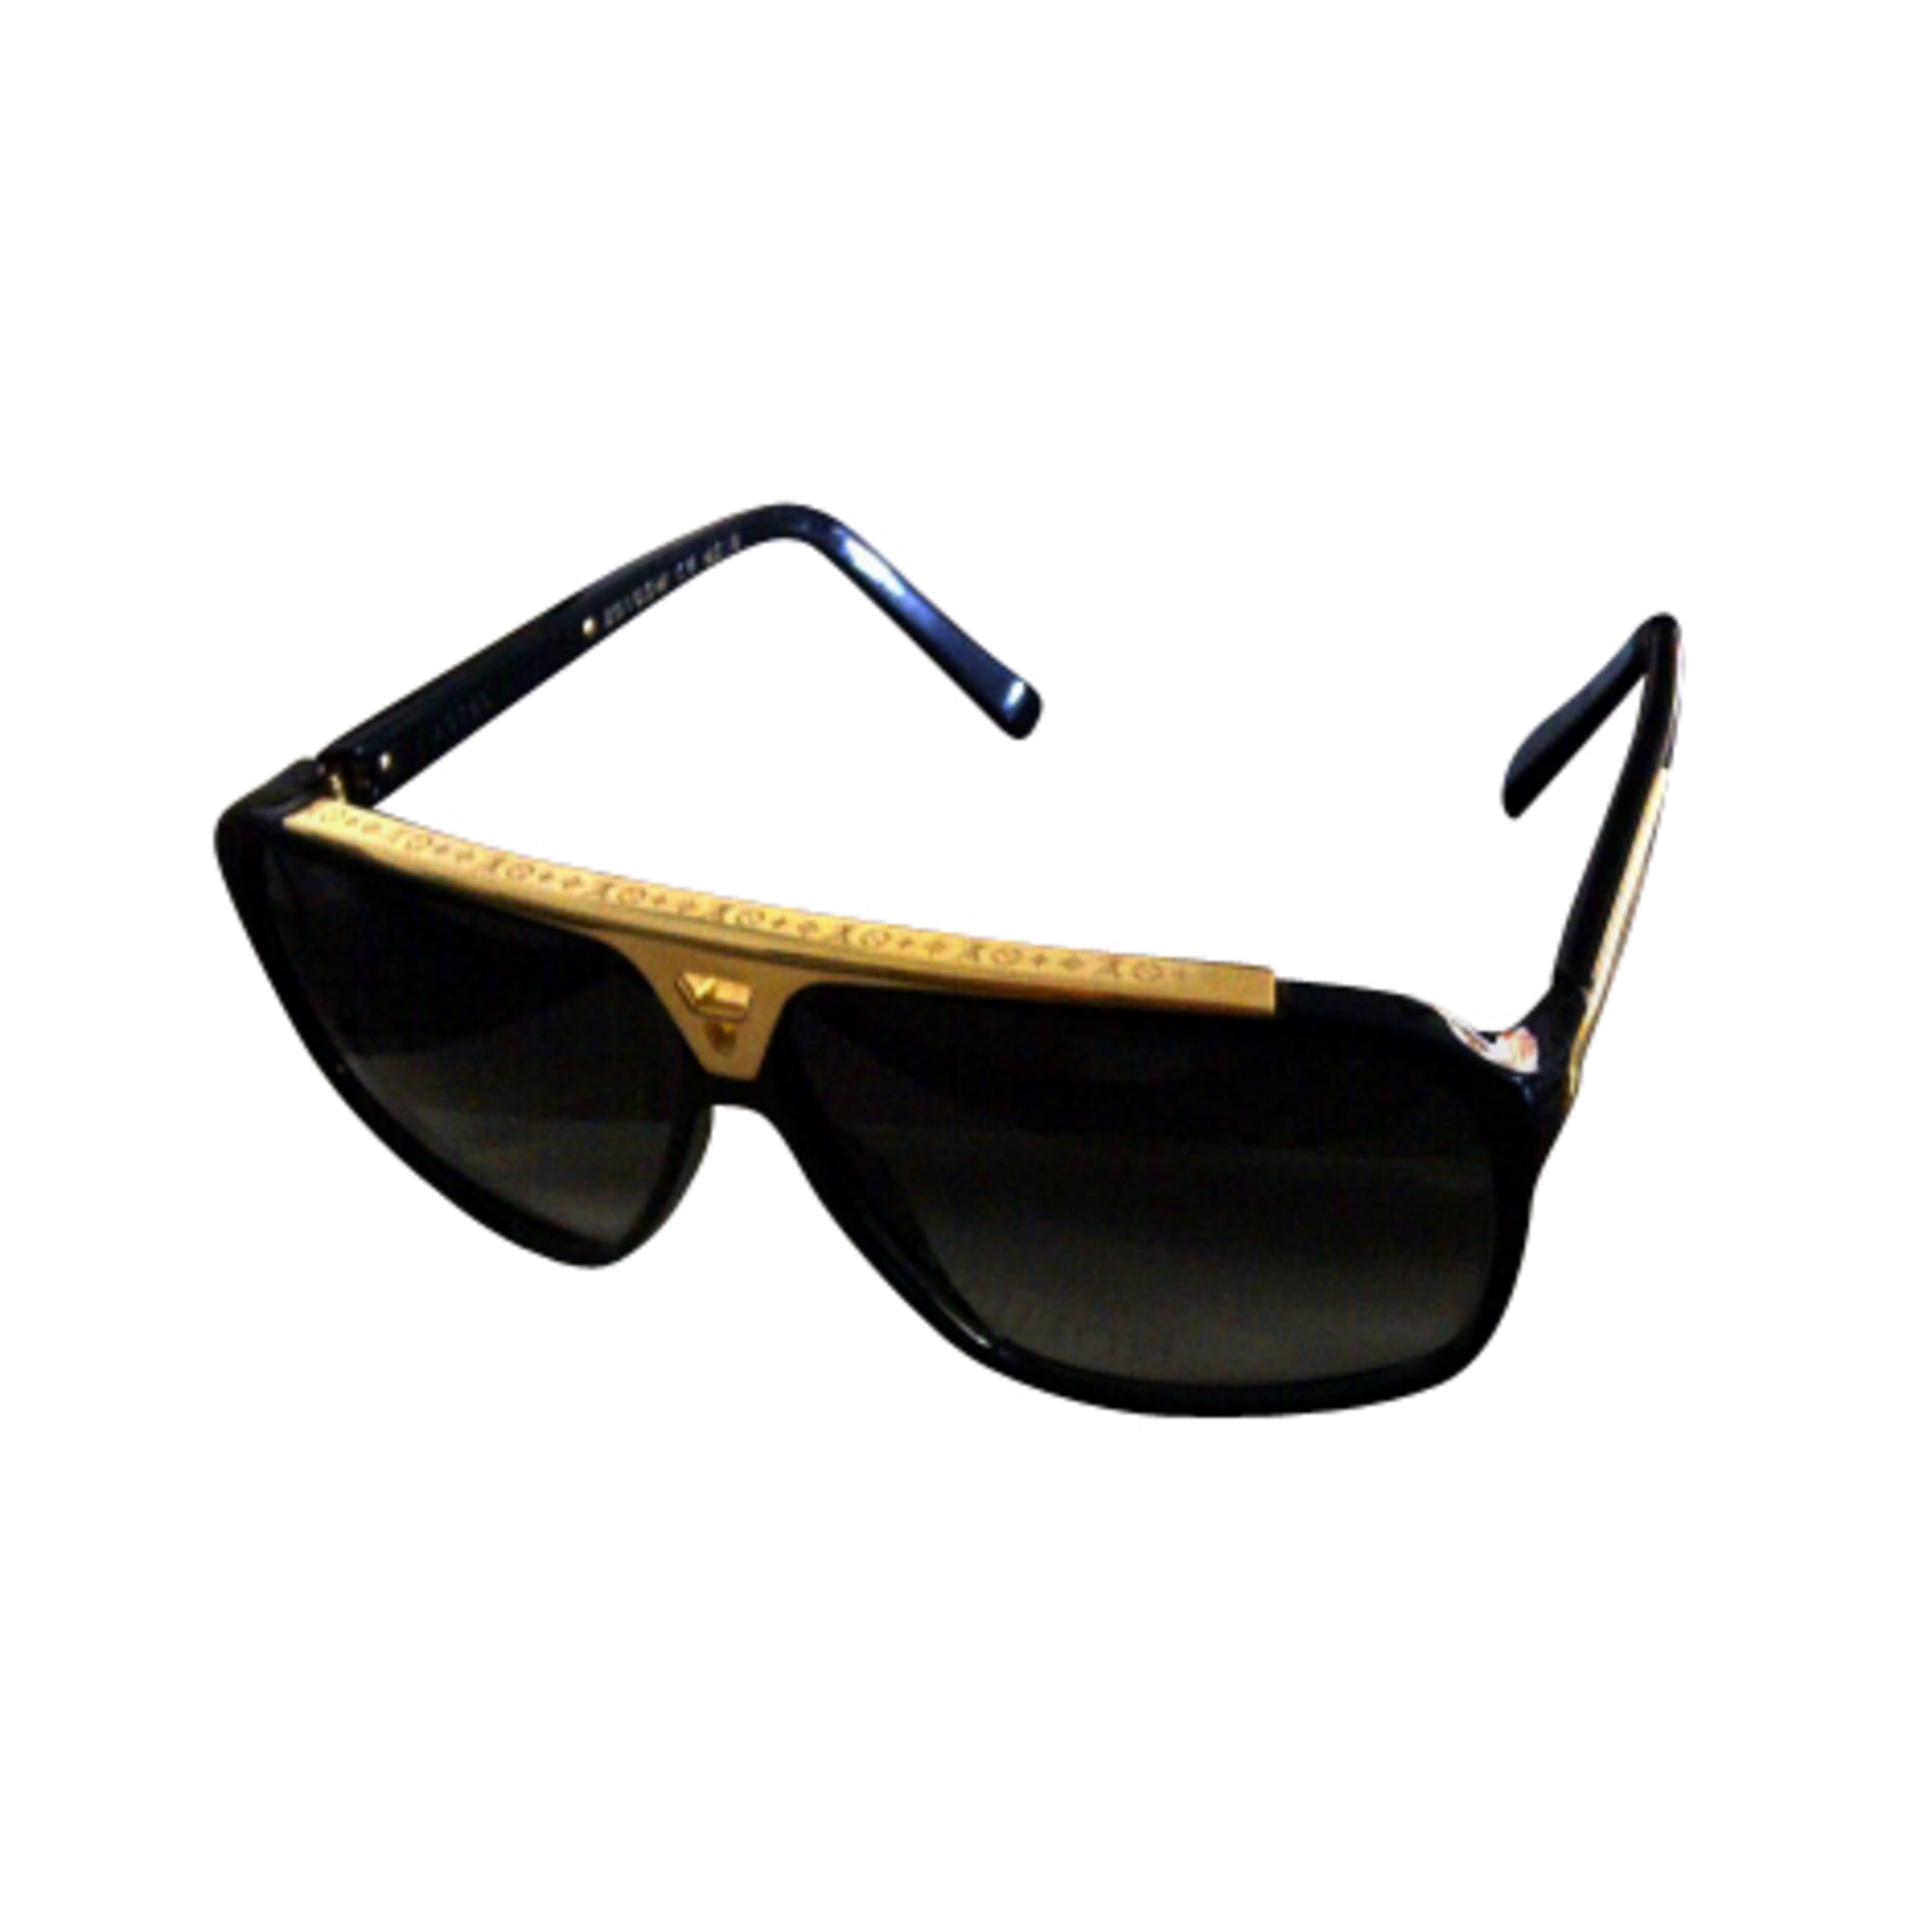 1940a111c003cd Sunglasses LOUIS VUITTON black - 561396